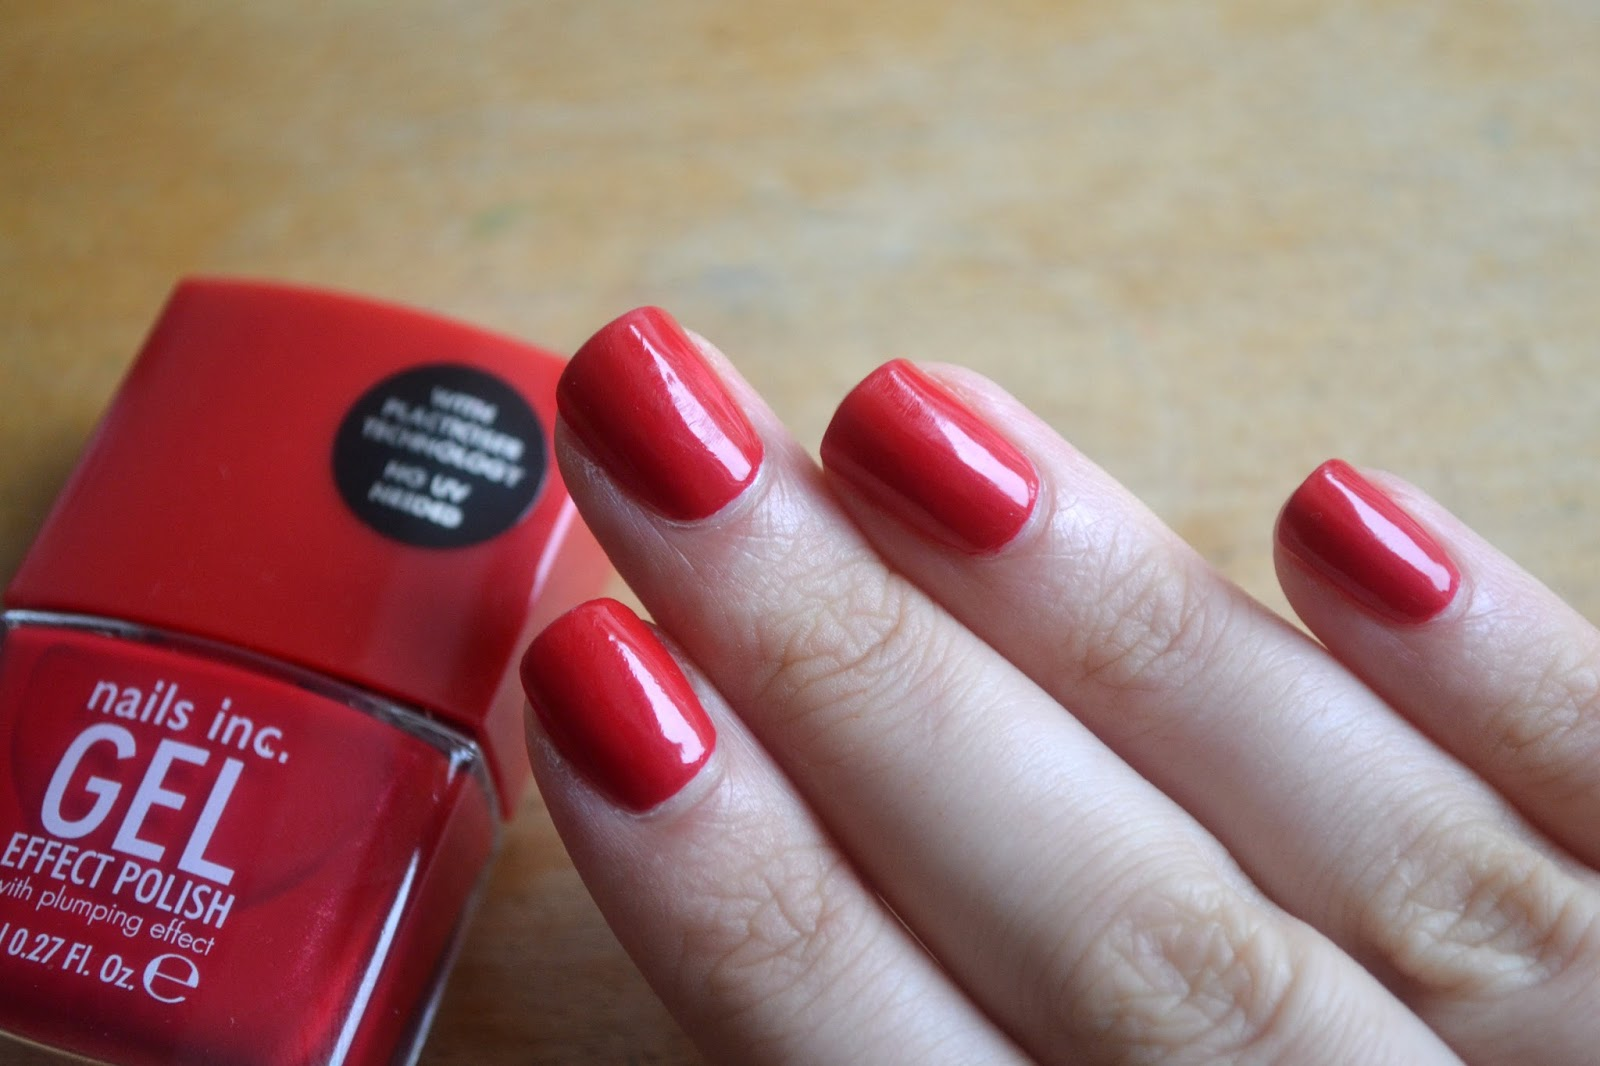 Nails inc gel effect - New Expression Nails